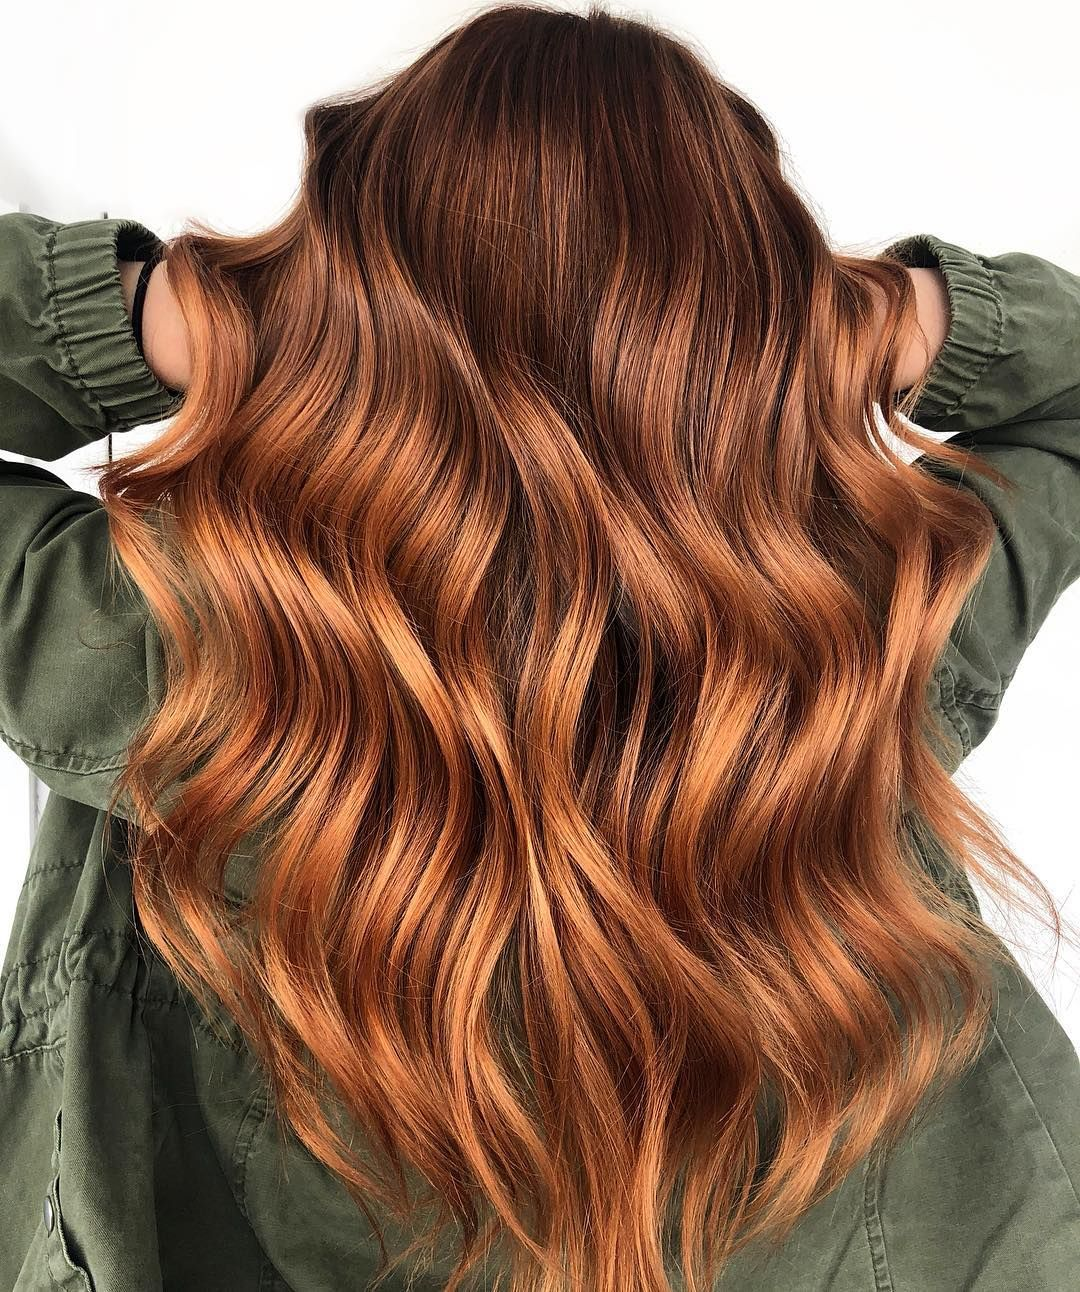 """Photo of Greta Wagner on Instagram: """"Ginger spice 💥 . . . Touched up her babylights with @redken up to 7 20vol and glossed her all over everything with SEQ 8cr, 7c, 7cc equal…"""""""